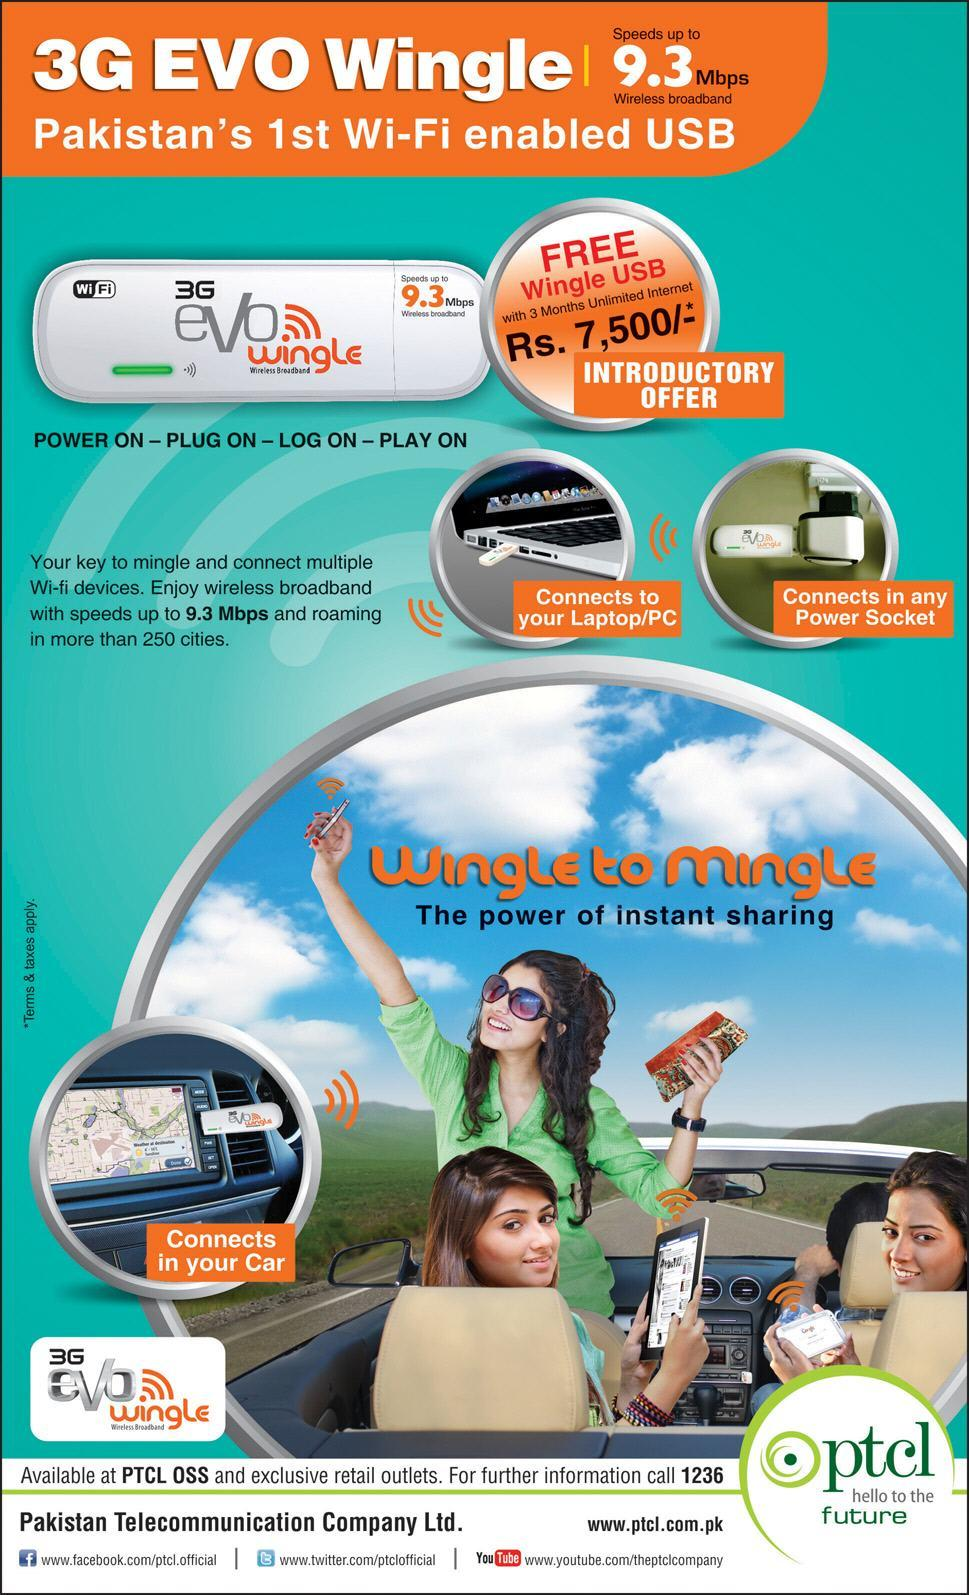 PTCL Brings 3G Evo Wingle 9.3 Mbps Wifi Enabled USB